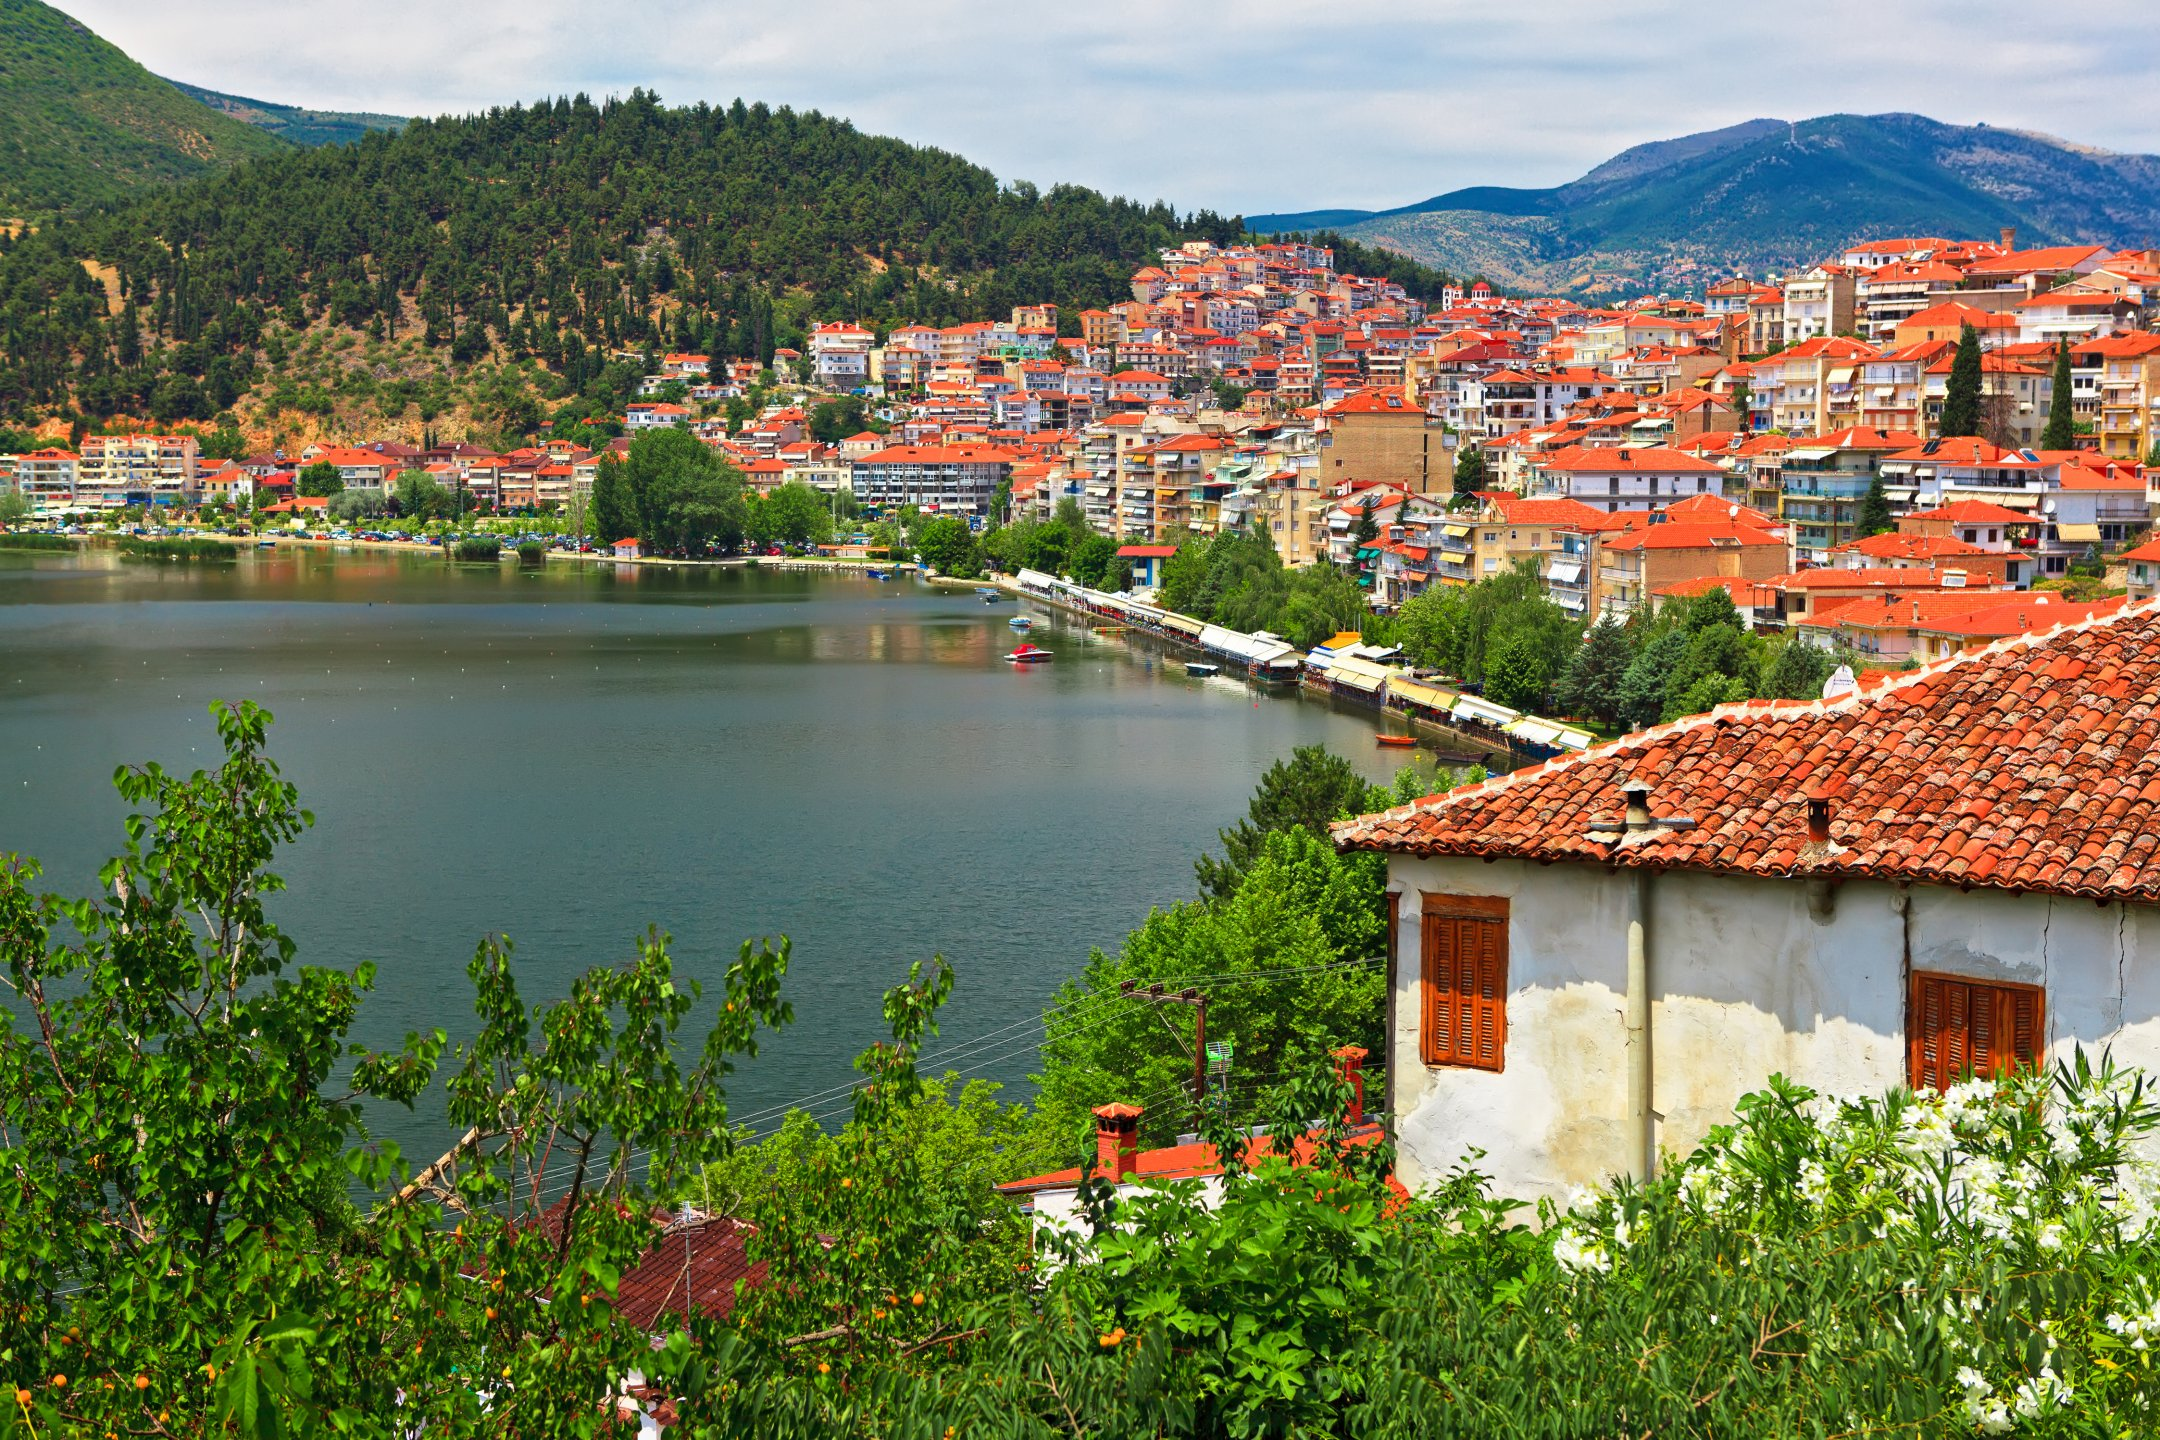 View of the city by the lake, Kastoria